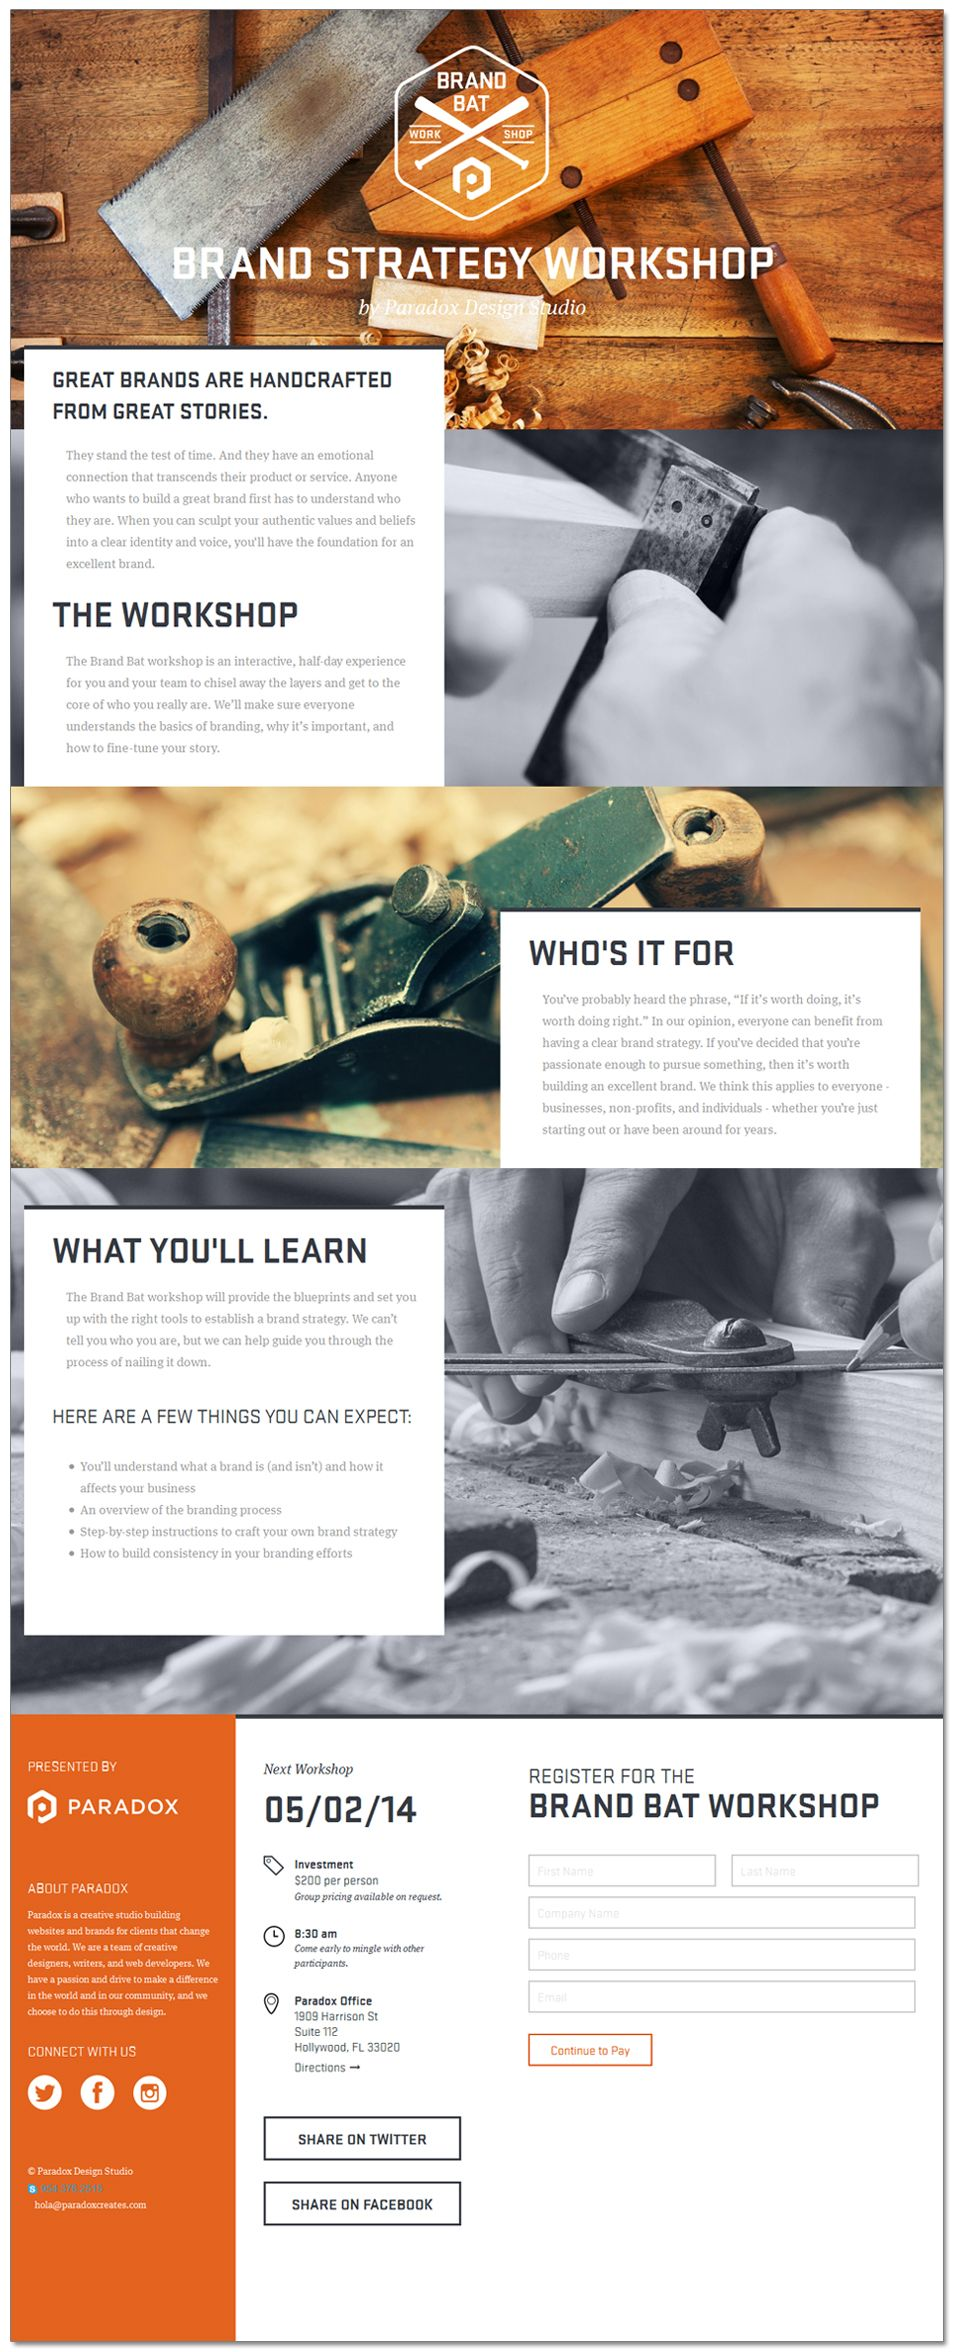 The Brand Bat Web Design Email Flat Layout Page